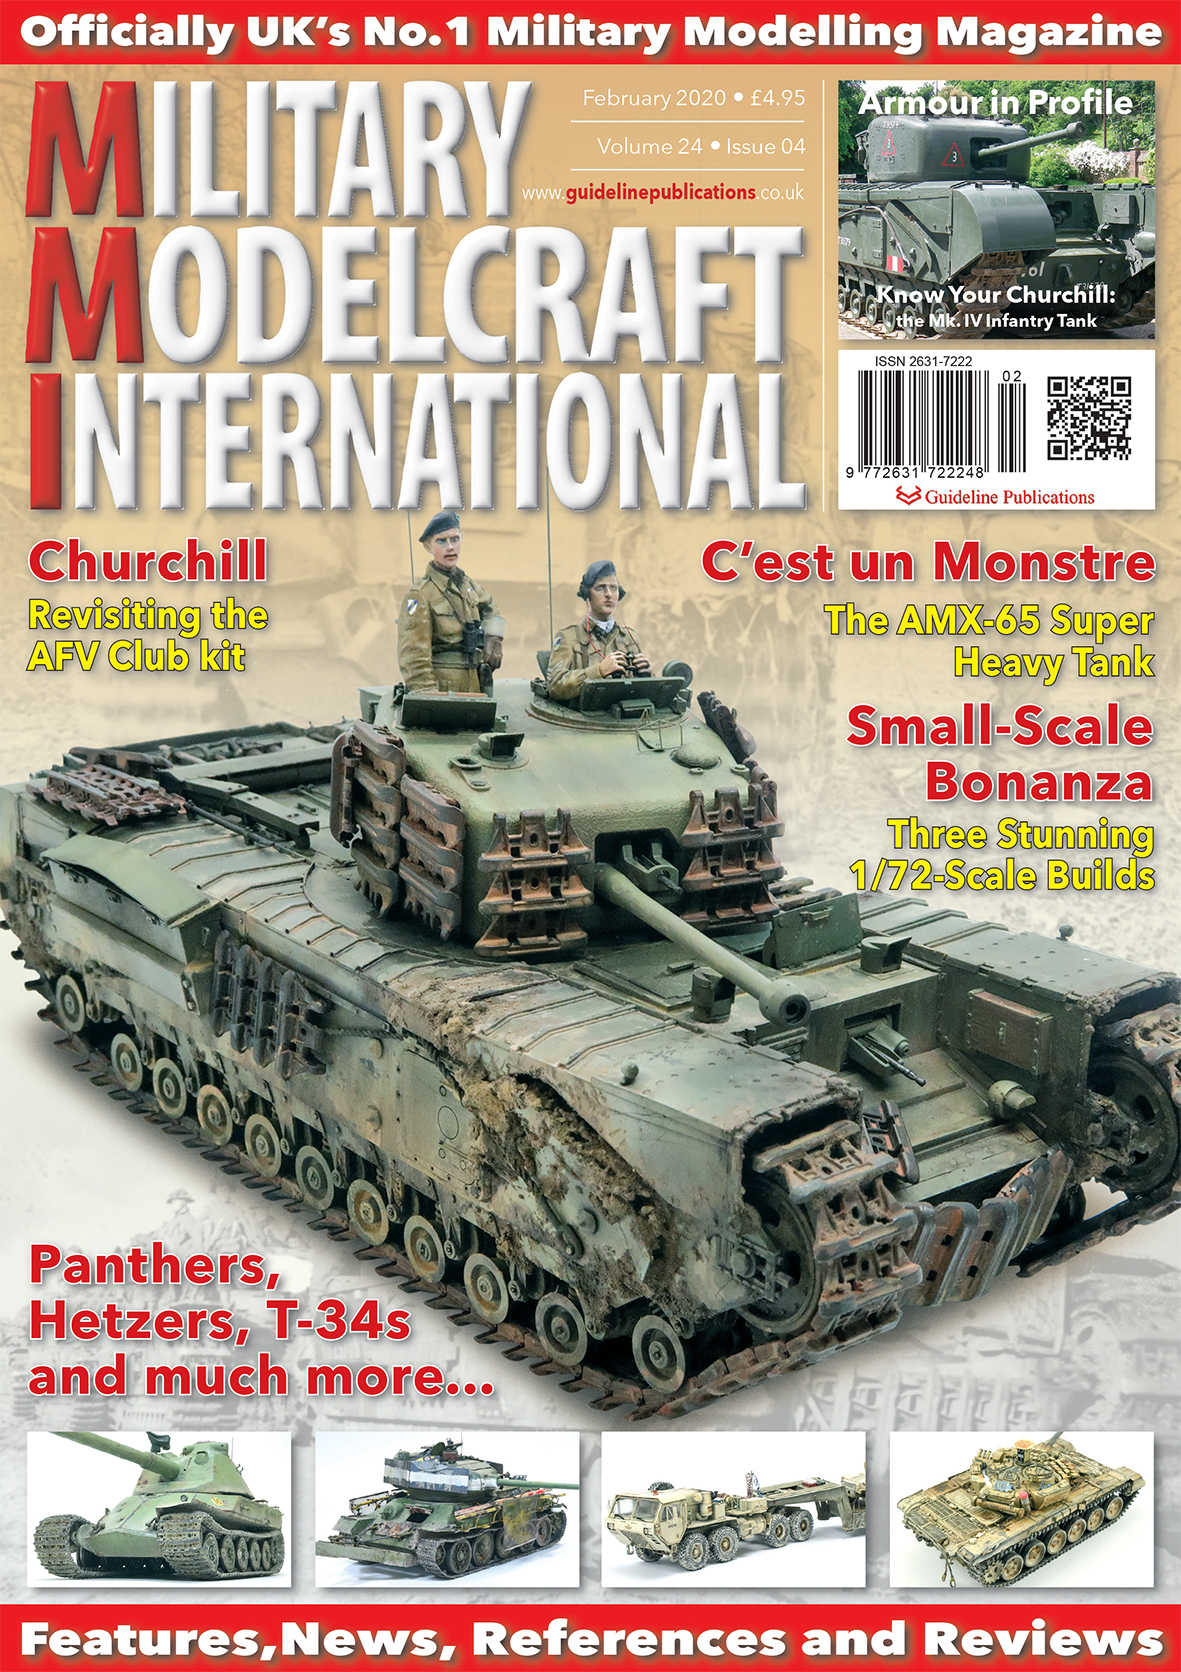 Guideline Publications Military Modelcraft Int Feb 20 vol 24-04 February 2020